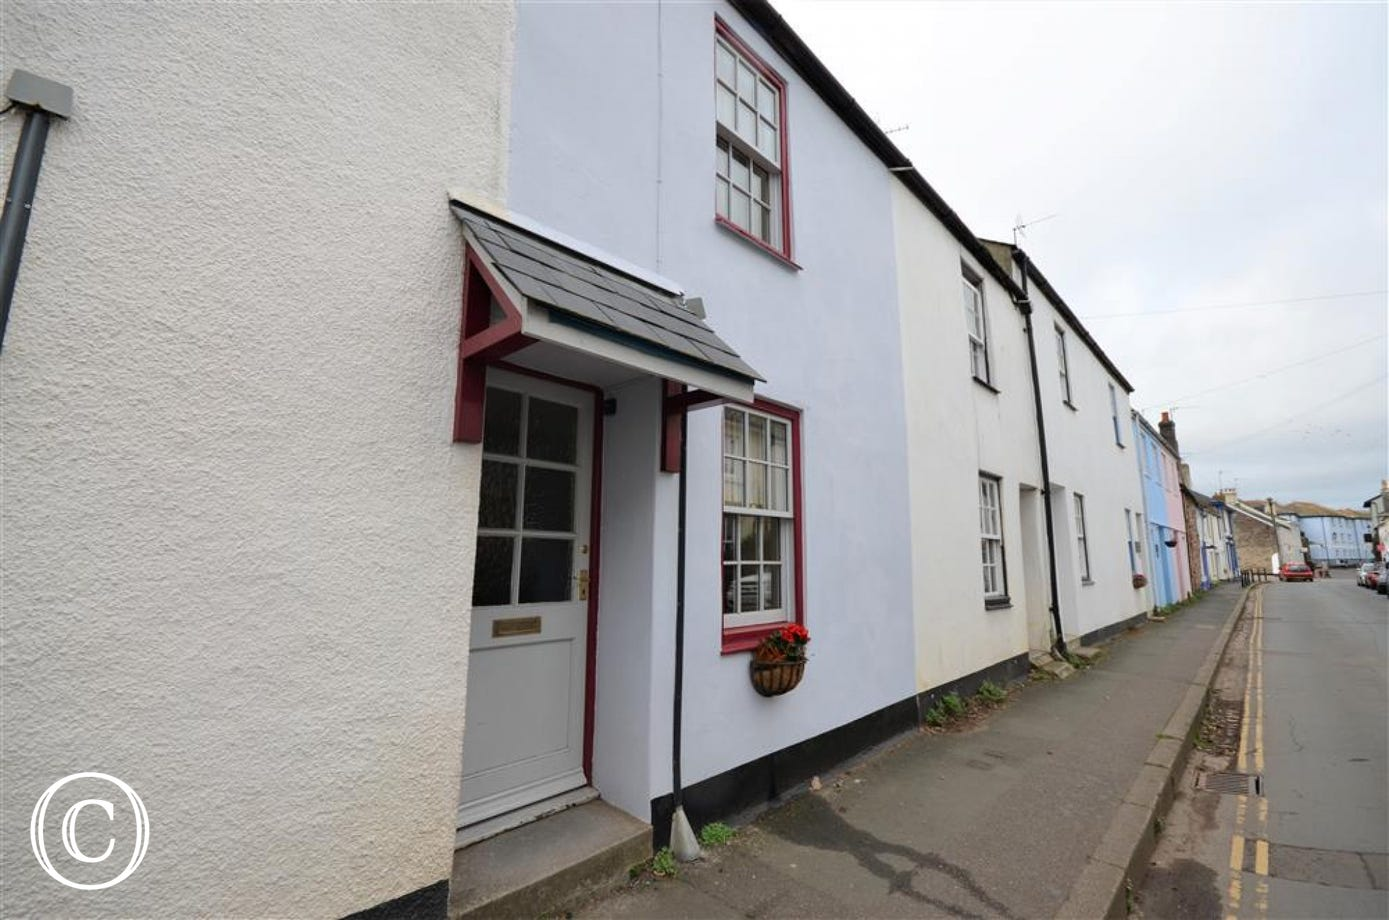 Exterior of property in Totnes